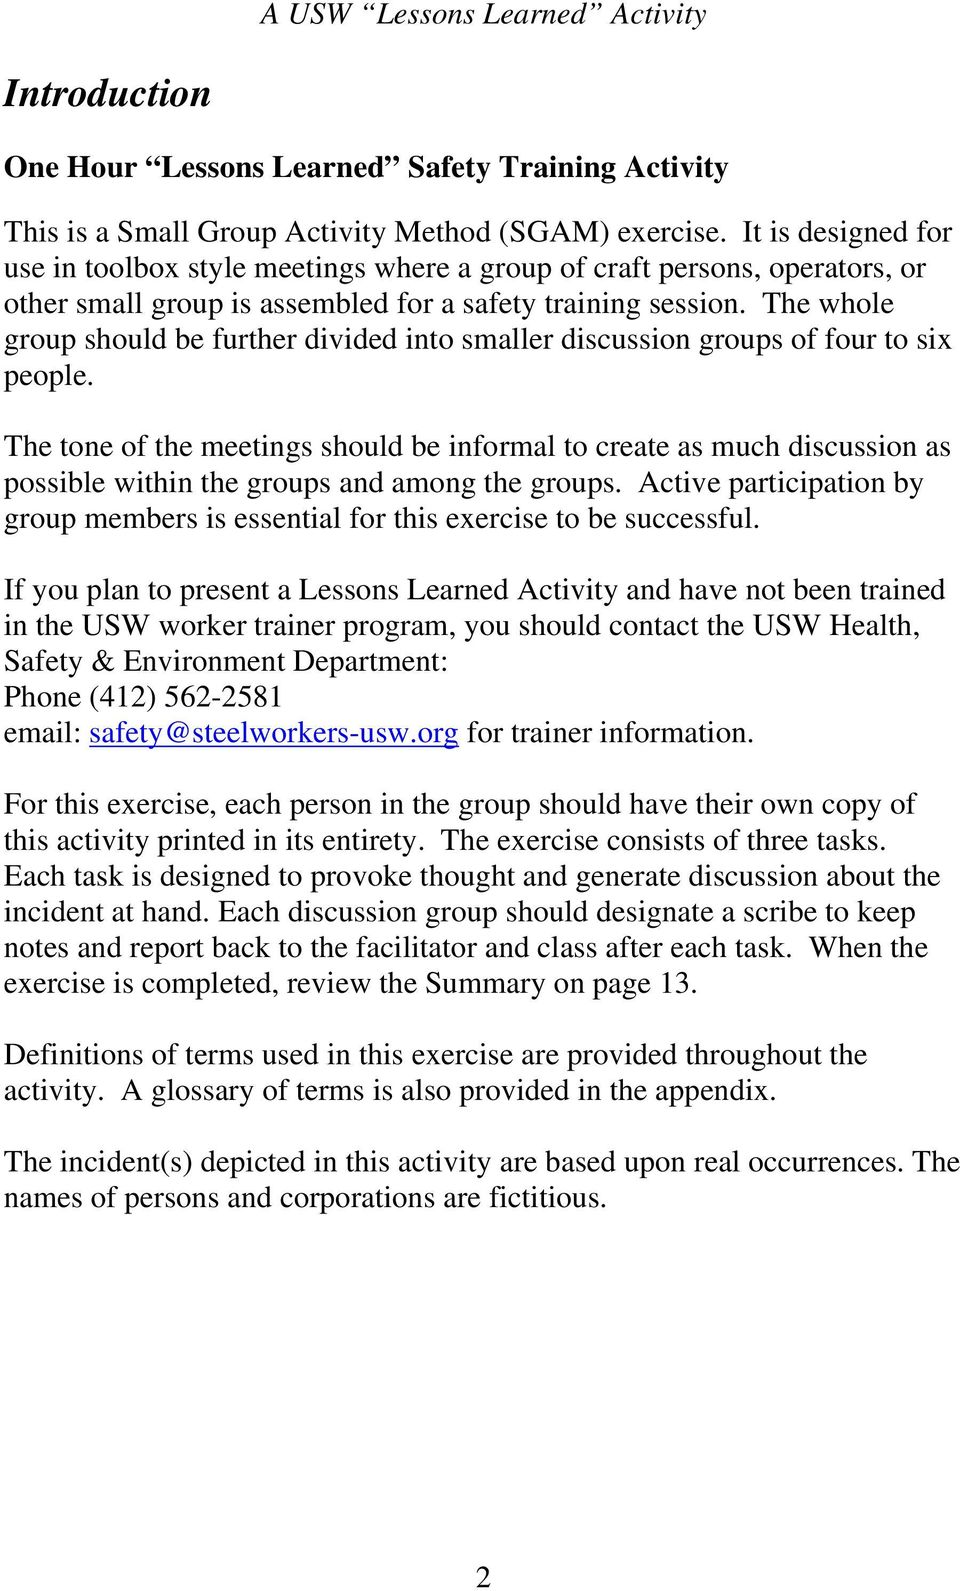 The whole group should be further divided into smaller discussion groups of four to six people.